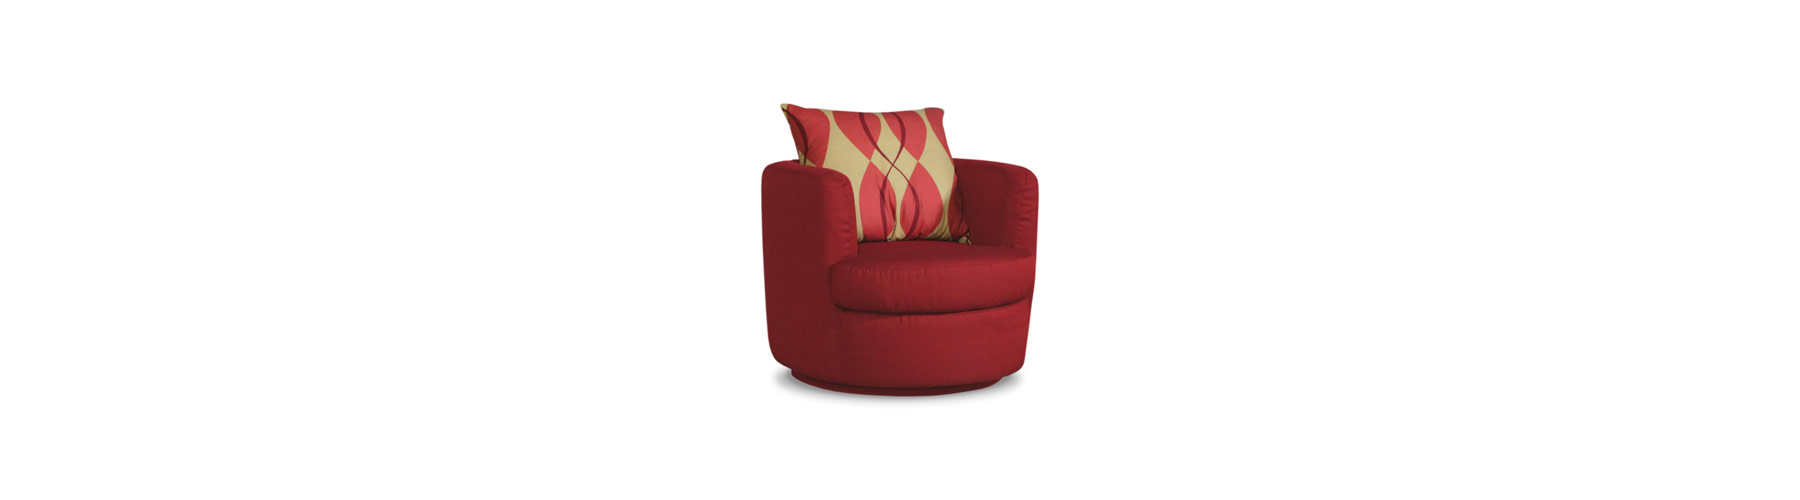 Roxy - Fauteuil William